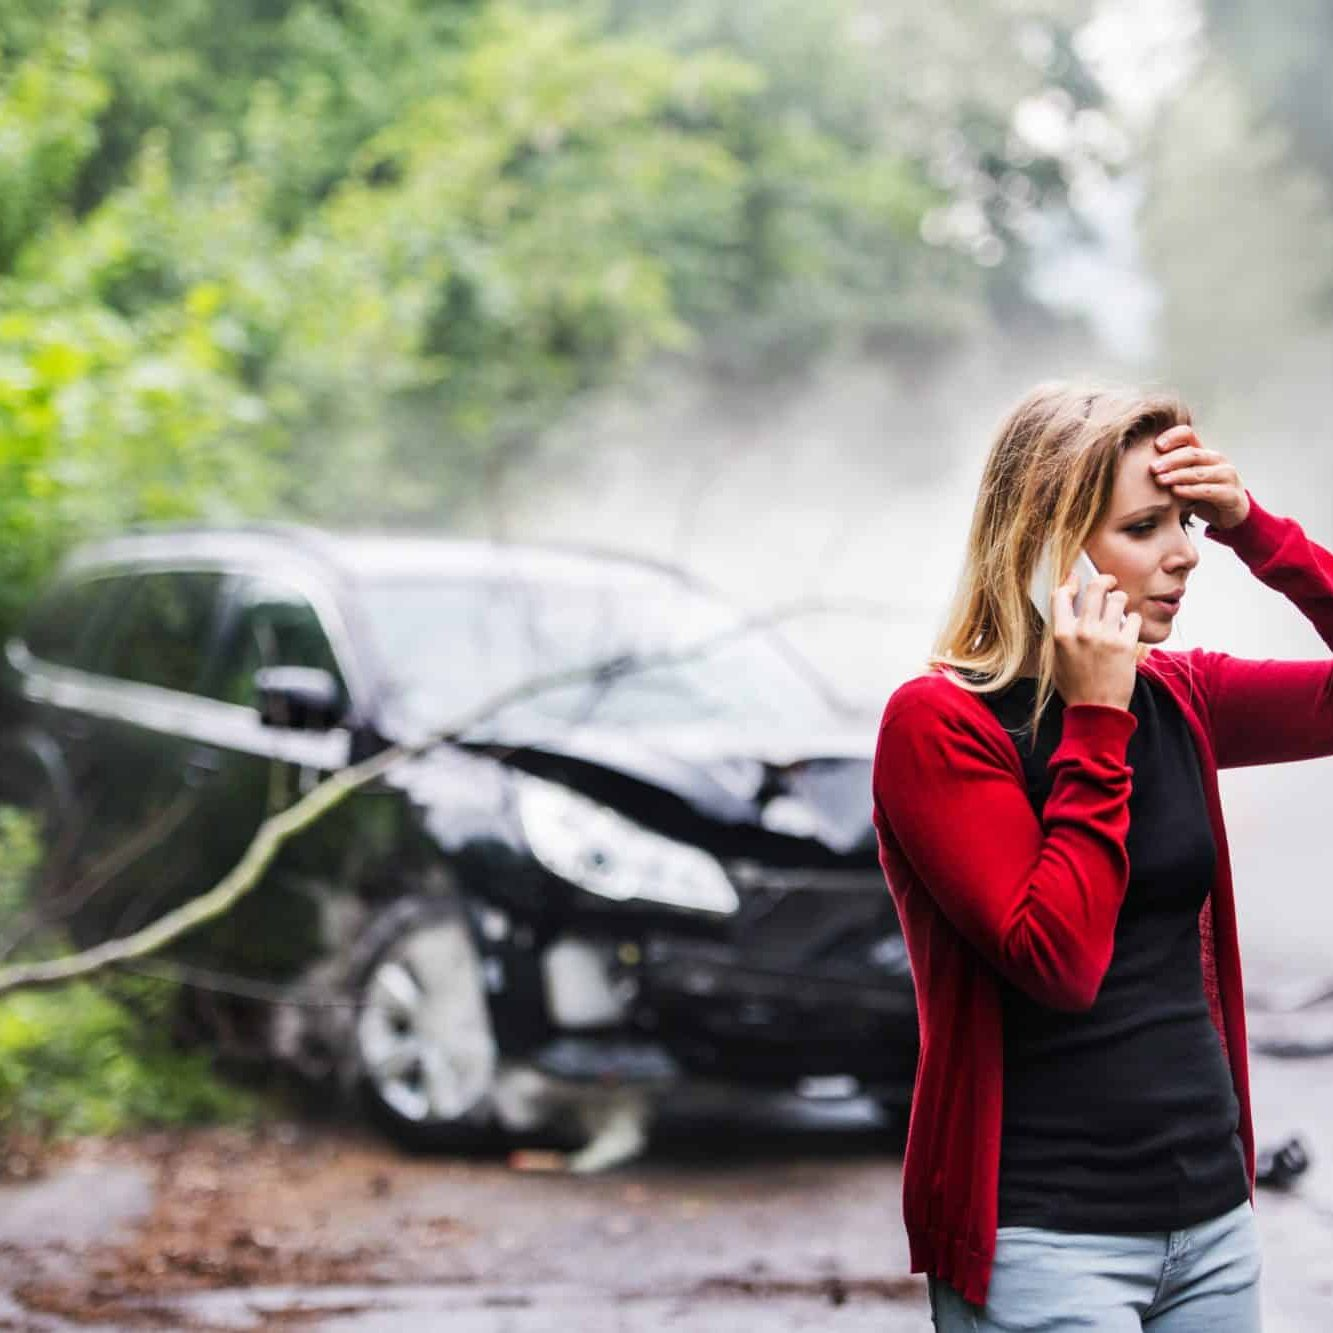 "Car accidents usually involve two or more vehicles. When the accident involves only one vehicle, it is called a single-car accident. These remain to be as dangerous as car accidents involving more vehicles than one because it can still result in deaths. There are many instances of single-car accidents, which includes when the car: • hits an animal • hits a pedestrian • collides with a pole, tree, wall, or other stationary objects • spins out of control • runs off the side of the road • flips over without any other vehicle involved Insurance Institute for Highway Safety (IIHS) reported that in 2017, Michigan, Indiana, and Minnesota tied for the lowest percentage of deaths in single-vehicle crashes at 49%. While it is positive that the state got the lowest percentage, 509 deaths are still too many. Single-car accidents are avoidable, but sometimes, there are instances where the crash is not the driver's fault. Cases Where the Driver is Liable According to the Michigan State Police Criminal Justice Information Center, there were 534,223 cases in 2018, where the driver was distracted, which caused a crash or property damage. There are other reasons why the driver could have caused the accident. 1. Distracted driving – The driver is at fault if the accident happened because they were looking at a map, cellphone, their children, or at the backseat. Other instances, such as putting on make-up or changing the radio station, count as distracted driving, 2. Driver negligence – If the driver happened to be under prescription medication that heavily affects the driving, they would be held liable for the collision. This rule also applies to driving while fatigued. 3. Inappropriate speed – Speed limits are in place to ensure road safety, but going over the limit can cause unforeseen accidents. Driving too fast under certain conditions like poor weather and low visibility can also cause crashes. 4. OWI/OWVI – Operating while intoxicated (called ""driving under the influence"" in other states) or operating while visibly impaired can increase the risk for accidents. The driver will not be fully aware of the surroundings, leading to a vehicle crash. Avoiding these is a simple solution to a potentially deadly accident. The driver must abide by all the rules to keep himself (and other drivers and pedestrians) safe. Cases Where the Driver is Not Liable The driver is almost always at fault in single-car accidents. Still, there are some circumstances when the driver would not be held liable because there were other variables that caused the crash. It can be the negligence of the local government, car manufacturer, or other drivers. 1. Poor road maintenance - If the accident were due to deep potholes or other defects, the driver would not be held liable. The city or country is responsible for ensuring that the roads are safe for their constituents. Any dangerous road conditions or defects should be properly indicated using barriers or traffic cones. 2. Vehicle defects - The manufacturer would be liable if the accident were due to a defect in the vehicle. Defects in tires or brakes can lead to collisions or cause the car to run over the side of the road. Some flaws aren't under the owner's control, like the manufacturing of the brakes or tires. 3. Other drivers - When another person or another driver does something that forces you to act quickly without thinking, resulting in a collision, they can be held liable. Instances like this can be when a motorist suddenly swerves into the lane, when objects suddenly fell off of a pick-up truck, or when some people did not follow pedestrian rules. 4. Defective signs and signals - If a traffic signal was malfunctioning, a road sign was accidentally covered by trees or some other blockage, or road lines become too faded for a driver to notice, the crash would not be the driver's fault. If these signs were adequately maintained, the single-car accident could have been prevented. The victim may be entitled to damages if the single-car accident was not their fault and was due to another party's negligence. For a Free Consultation, Contact The Clark Law Office. There are many variables to consider when it comes to single-car accidents, and it is best to discuss the instance with licensed attorneys. Contact the best personal injury lawyers in Michigan. Review the situation with a free legal consultation and recover damages should one be entitled to it. The Clark Law Office ensures that the case will be handled with professionalism and expertise."